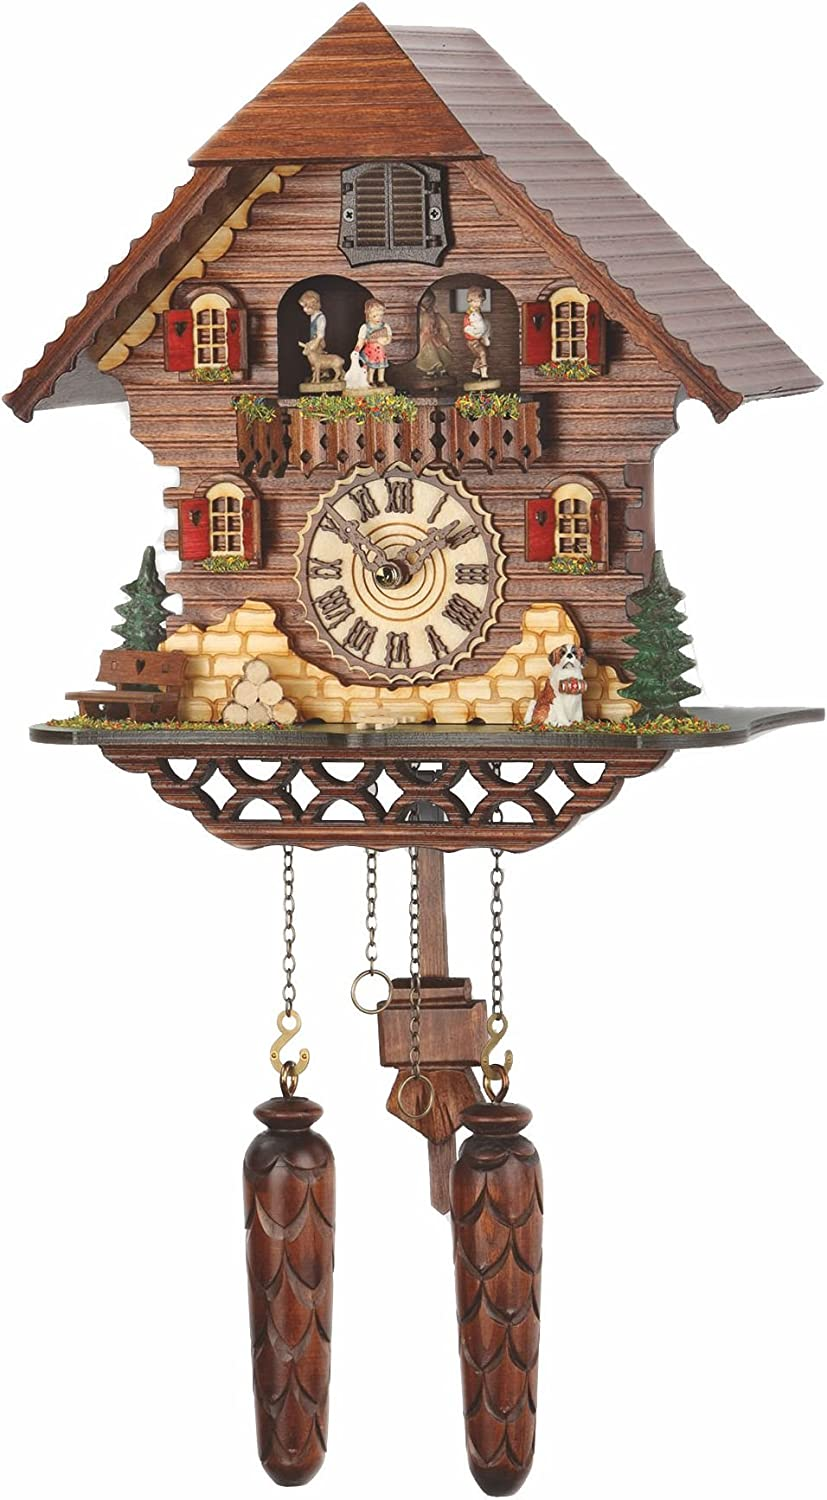 Trenkle Quartz Cuckoo Clock Black Forest House with Music, Turning Dancers TU 469 QMT HZZG